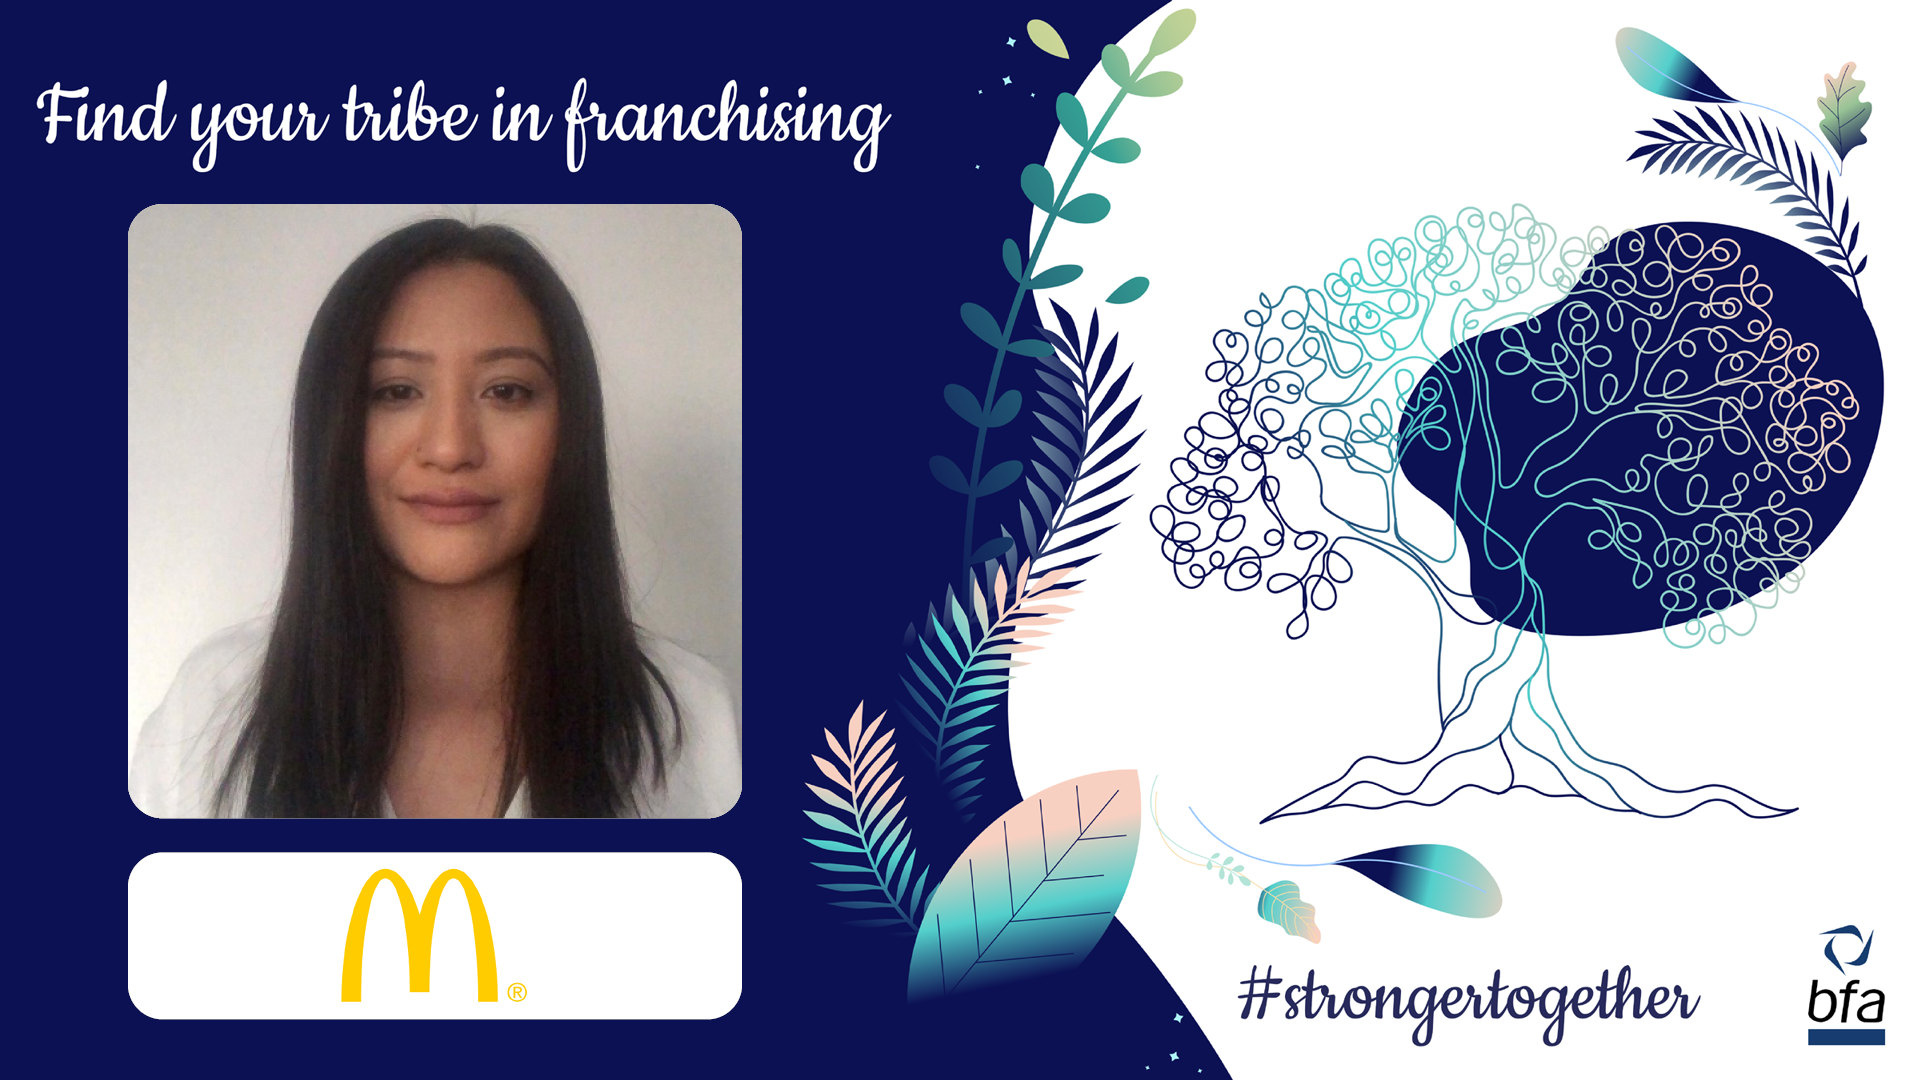 The bfa meets Rajeena Gurung, Franchisee Consultant at McDonald's